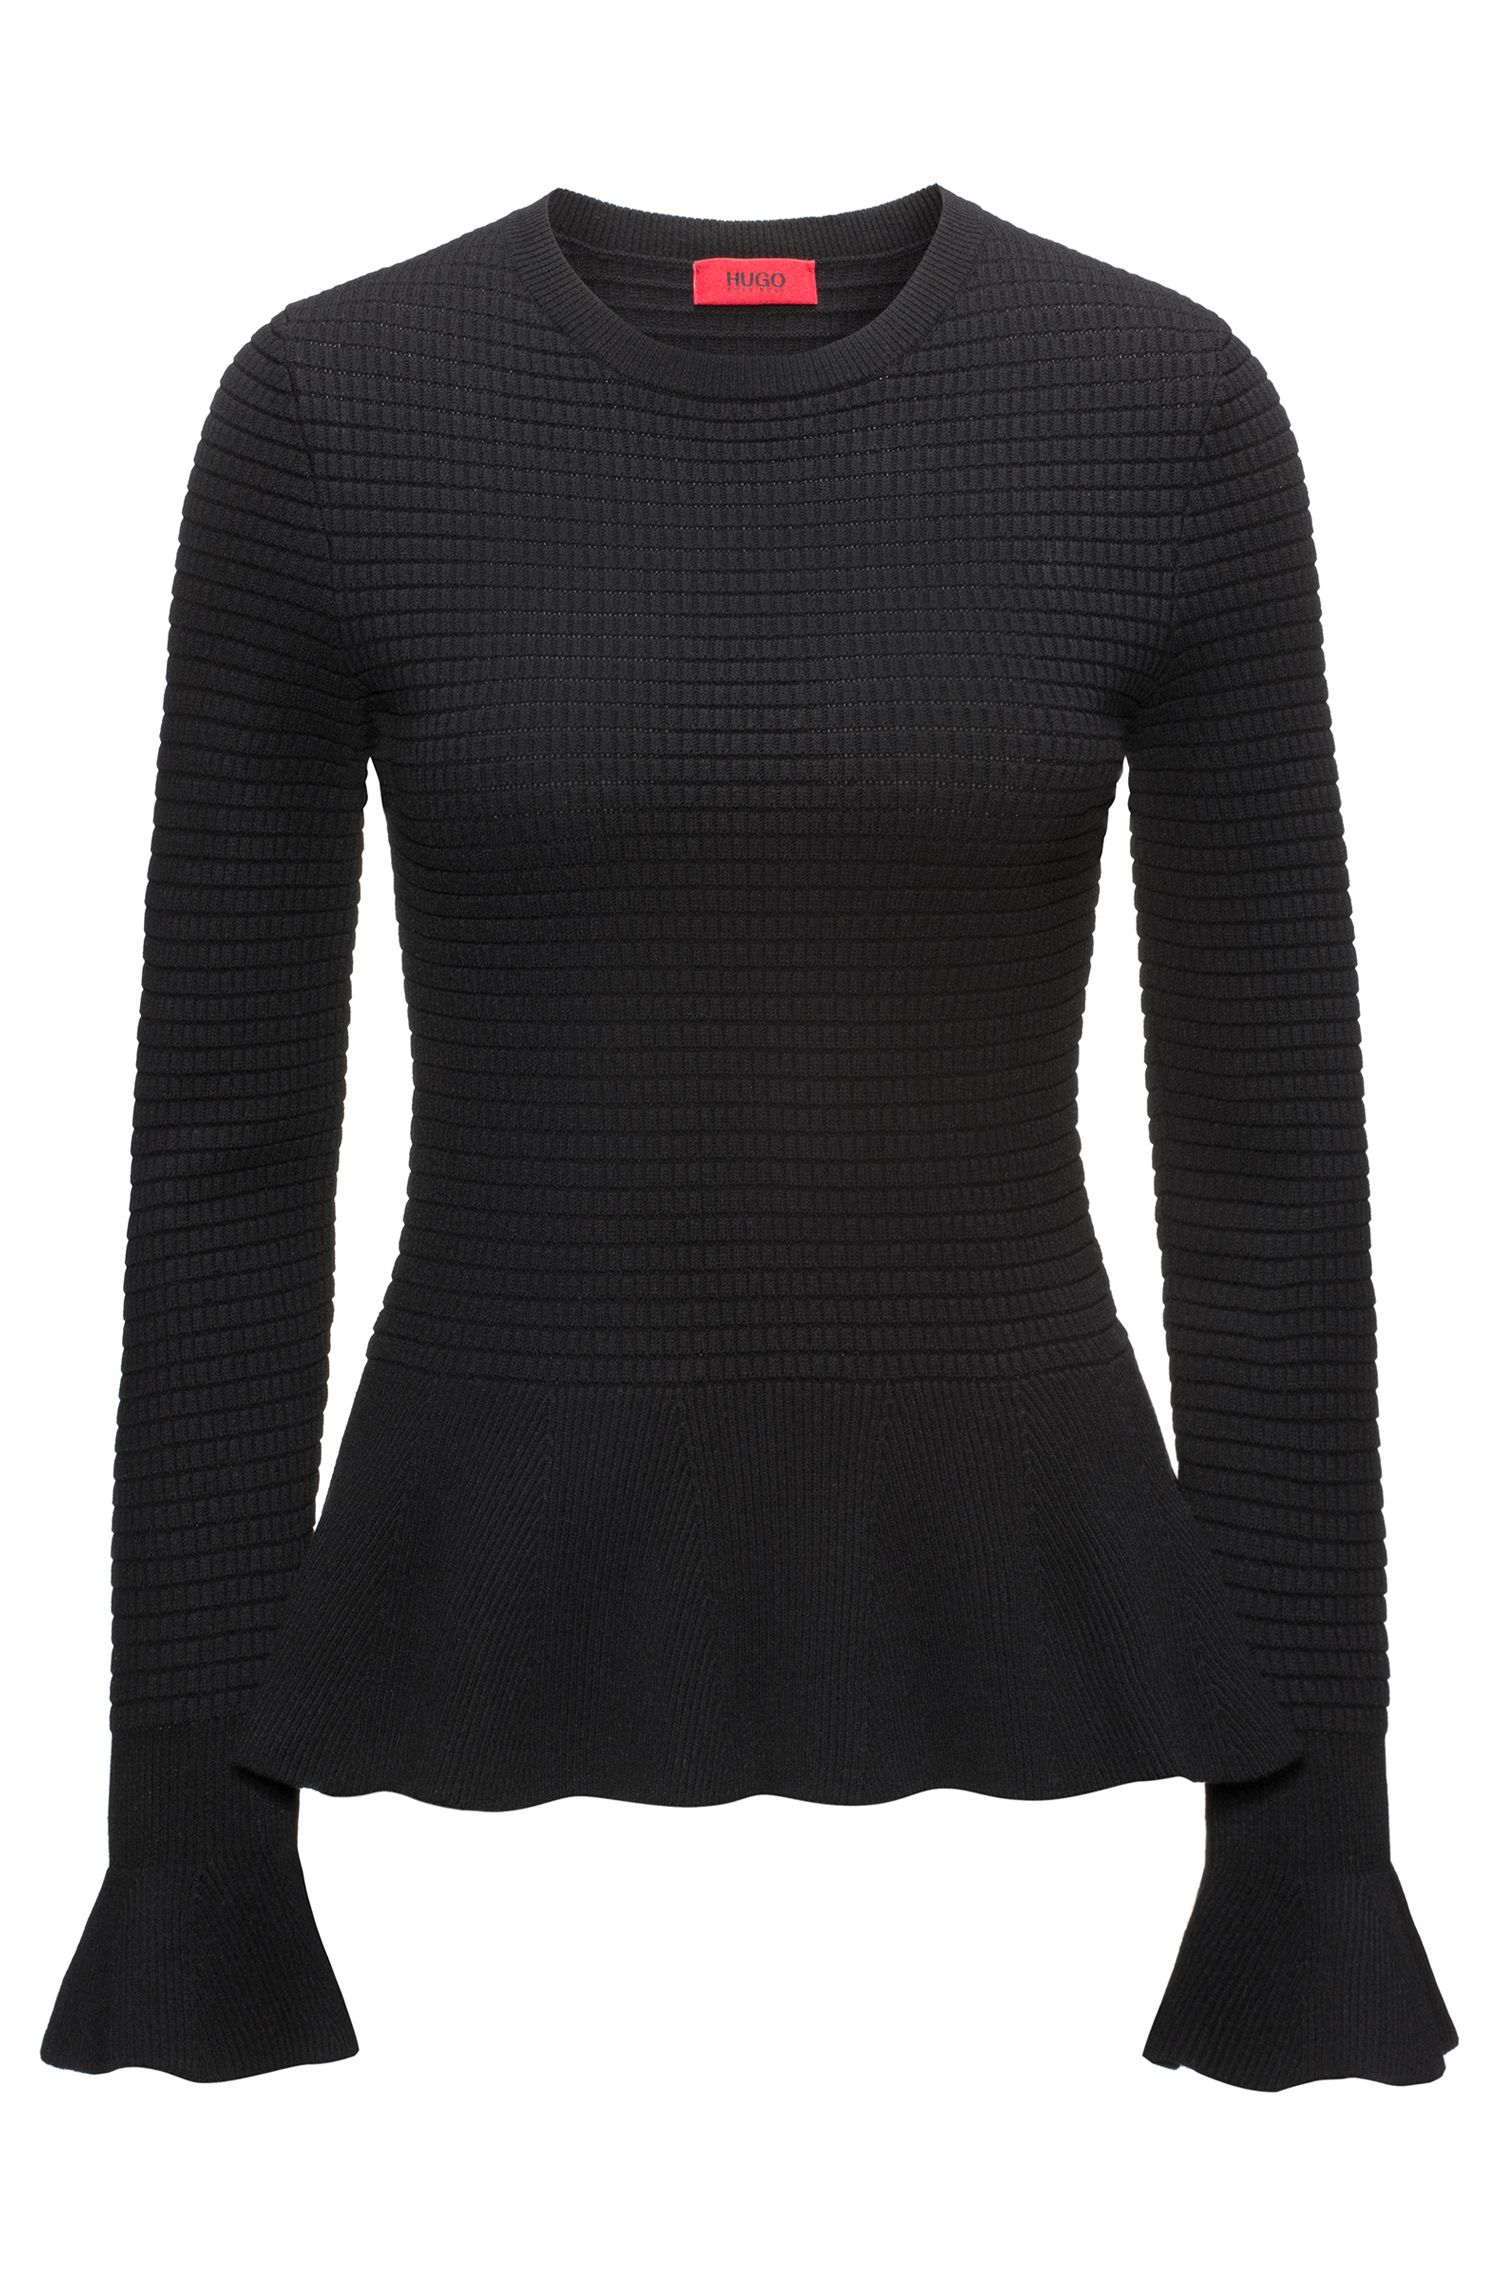 Peplum-hem knitted sweater in mixed knits